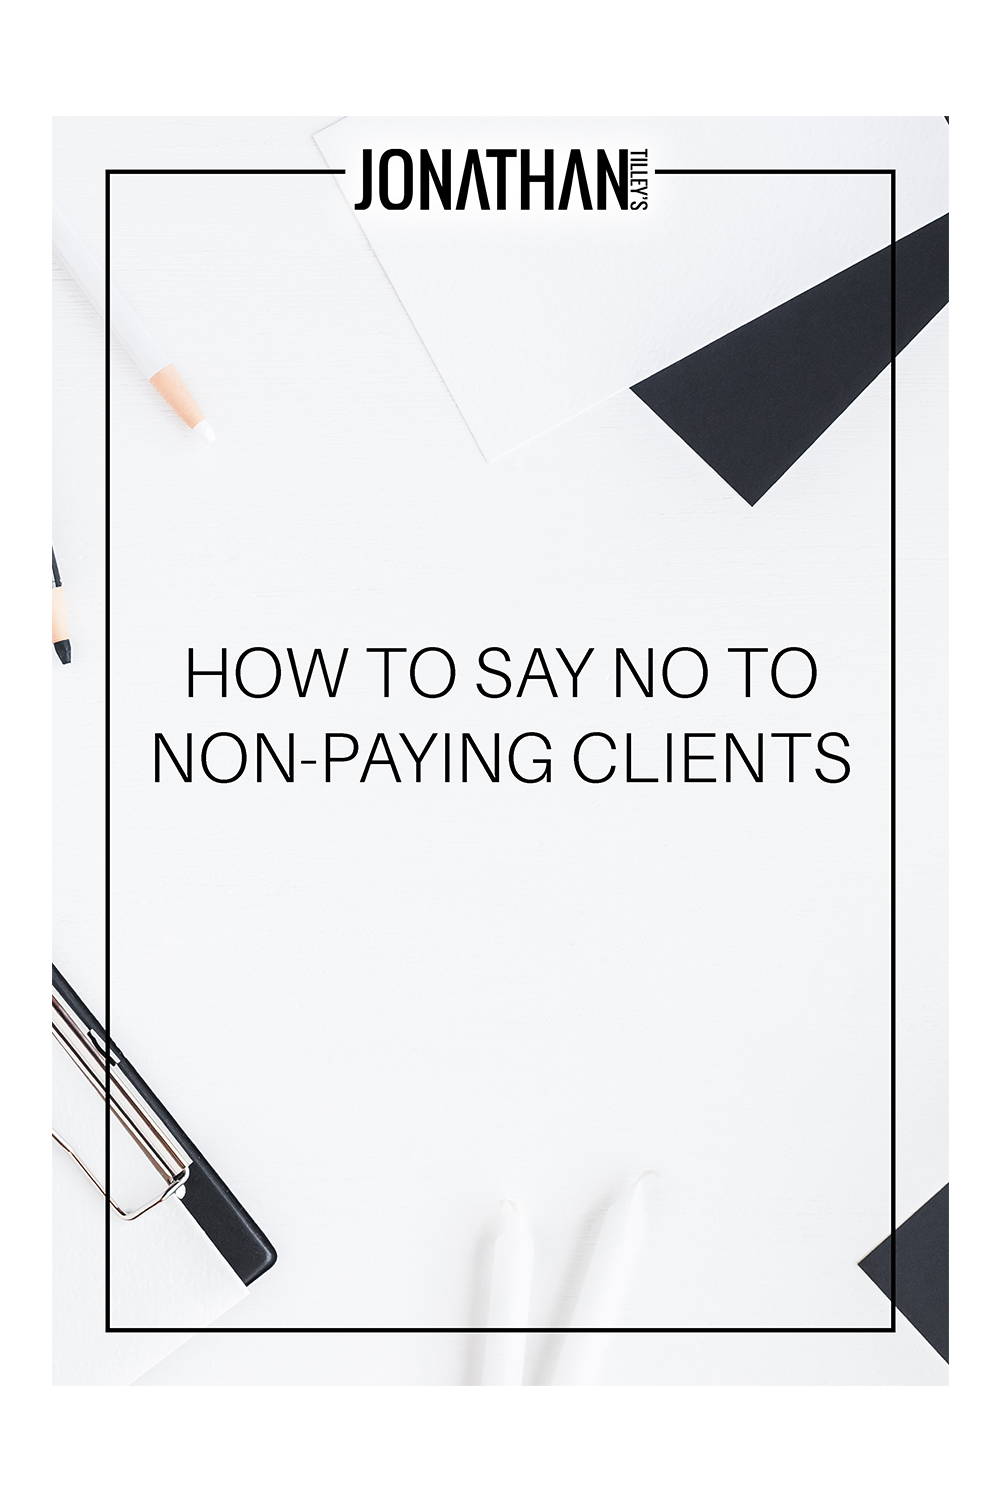 SS-How To Say No To Non-Paying Clients_Cover.jpg